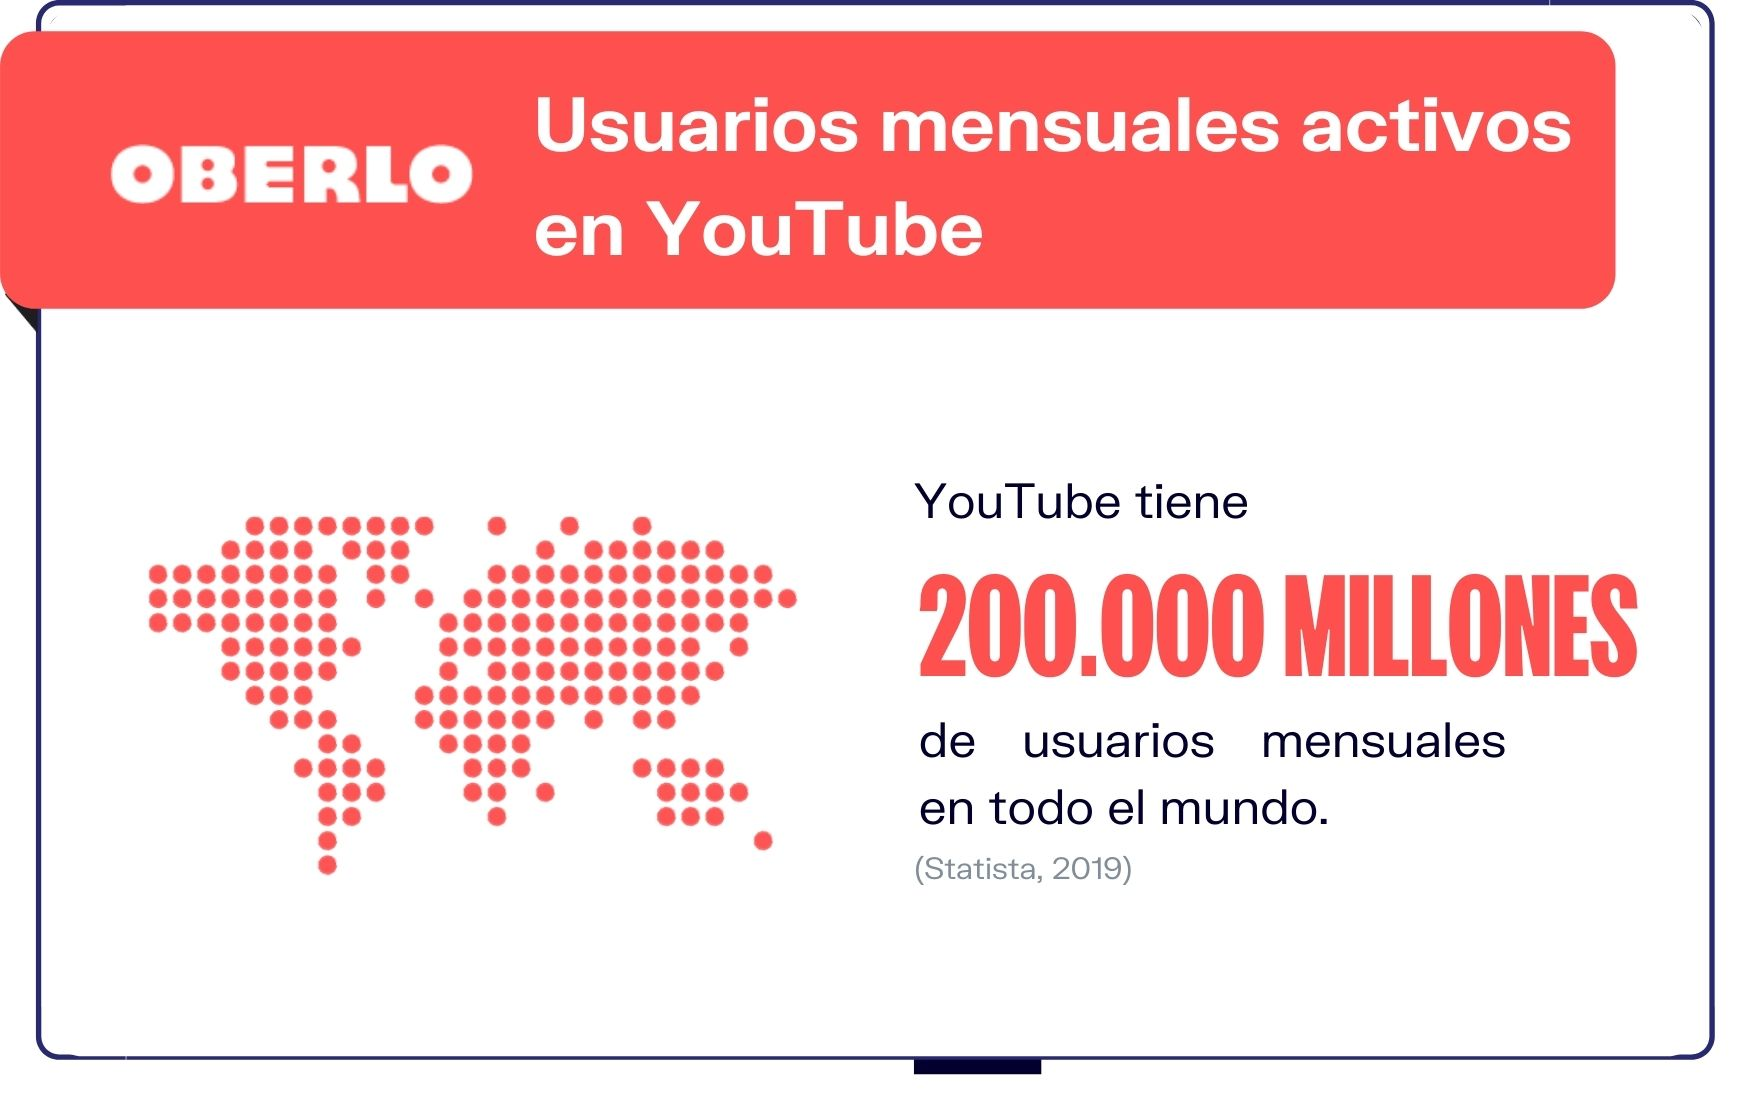 YouTube-Estadisticas-Usuarios-de-YouTube-activos-mensualmente